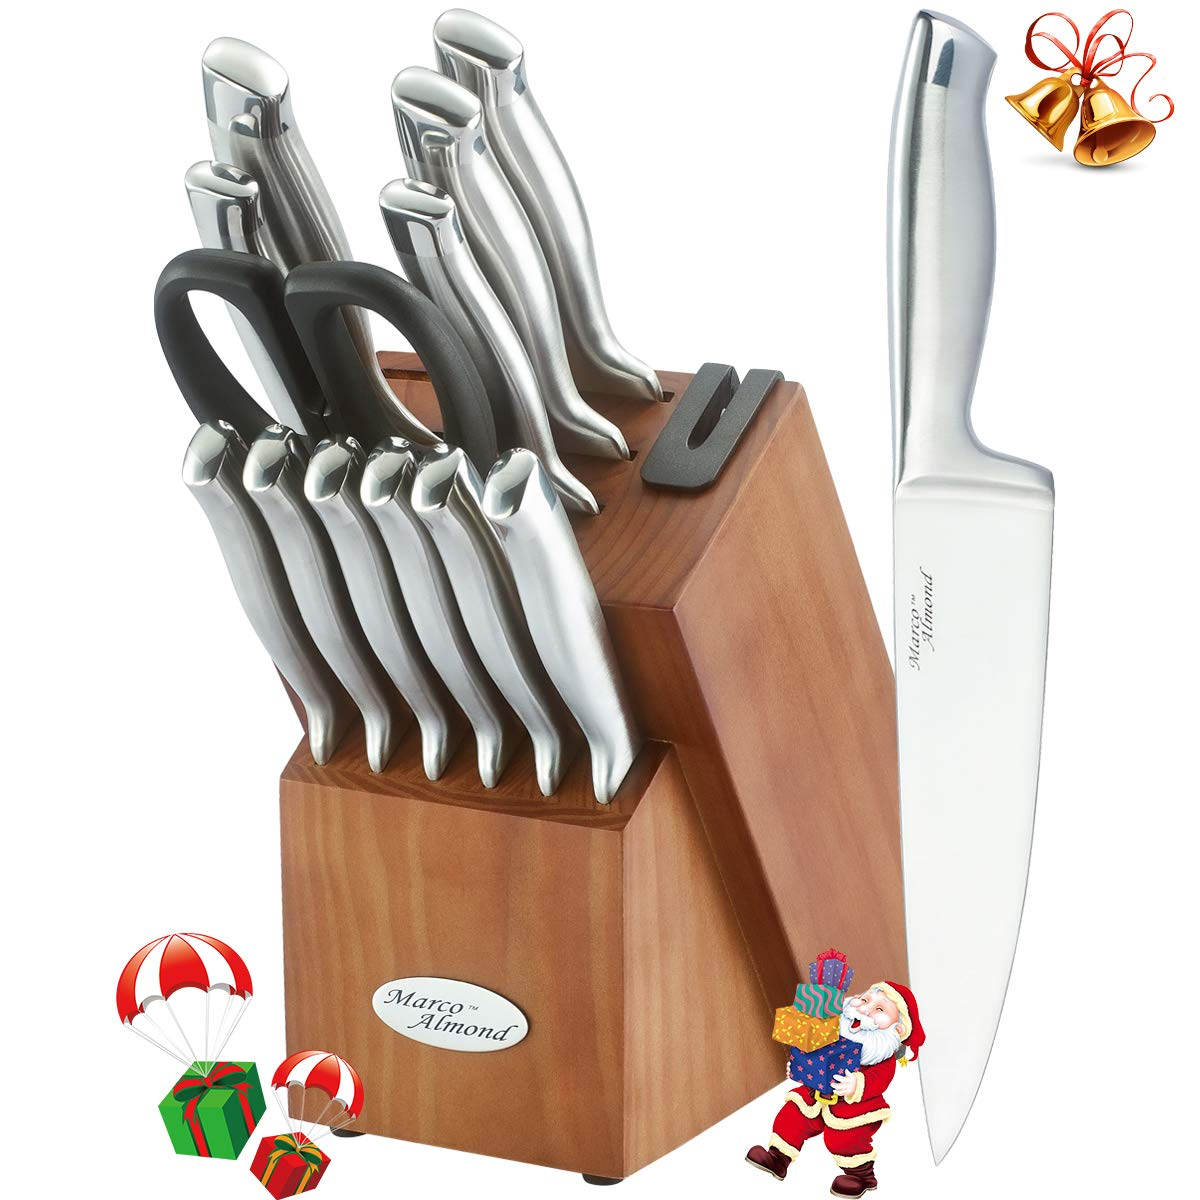 Knife Set, KYA26 Knife Block Set with Block, Single Piece Forged, 14 Pieces Kitchen Knife Set with Block and Sharpener, Self Sharping, Stainless Steel Silver Cutlery Knives Set, Best Gift